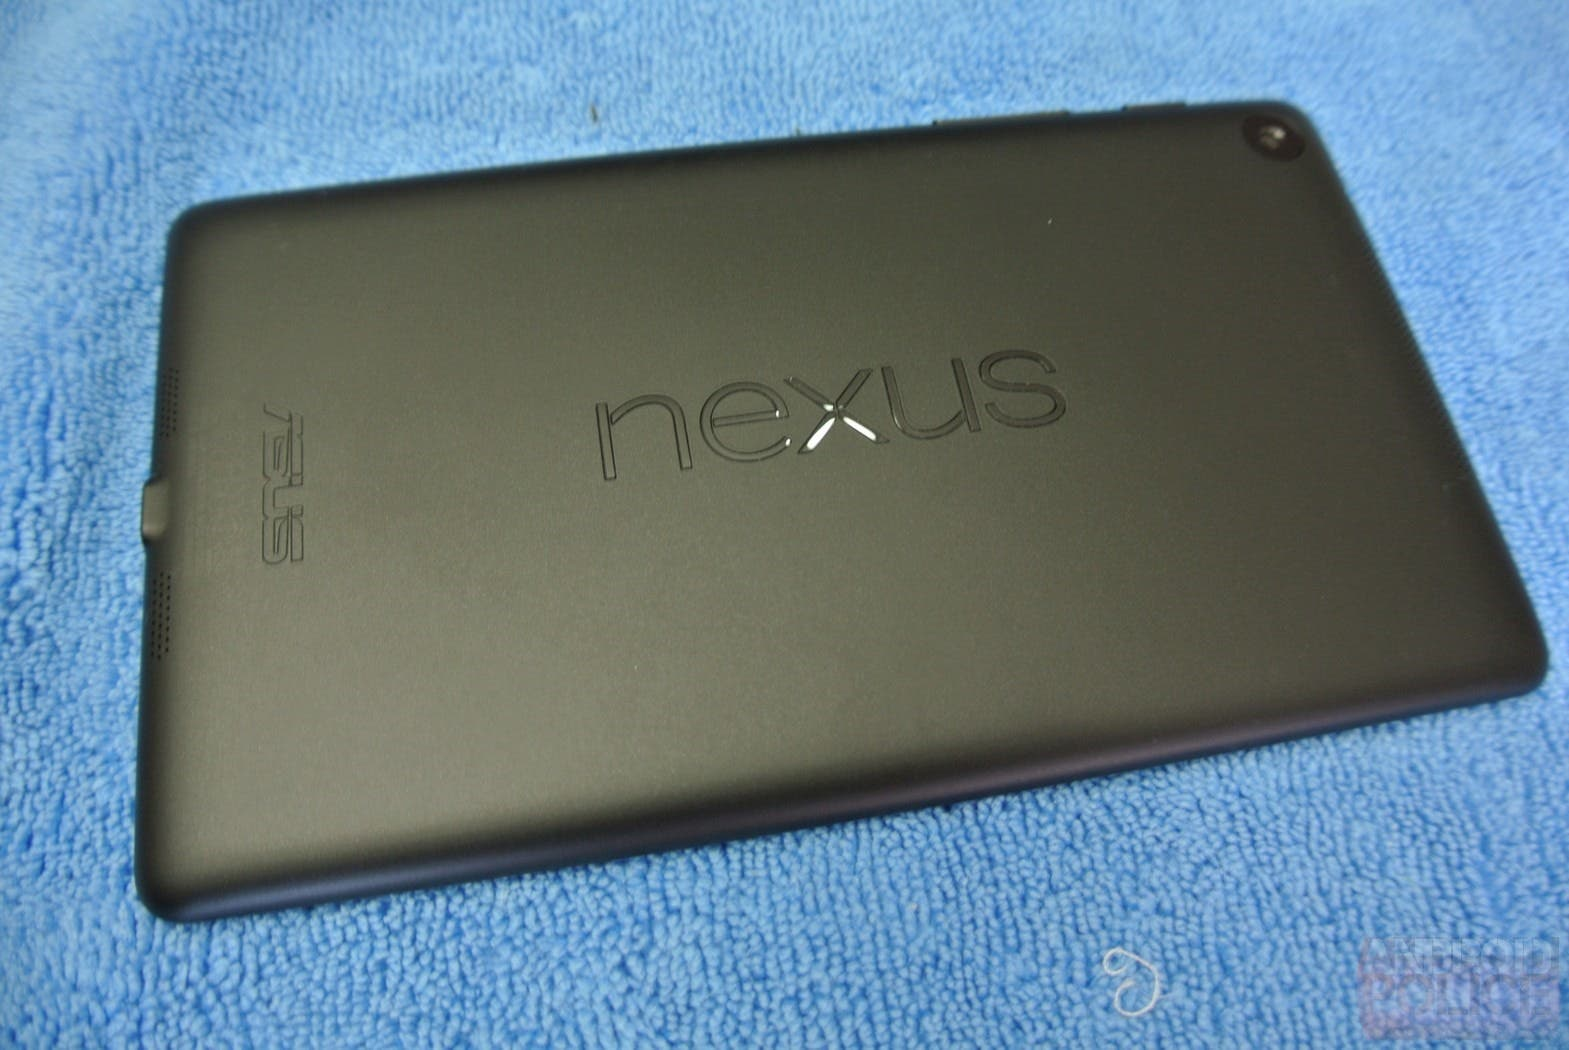 nexus-7-asus-google-2013-back